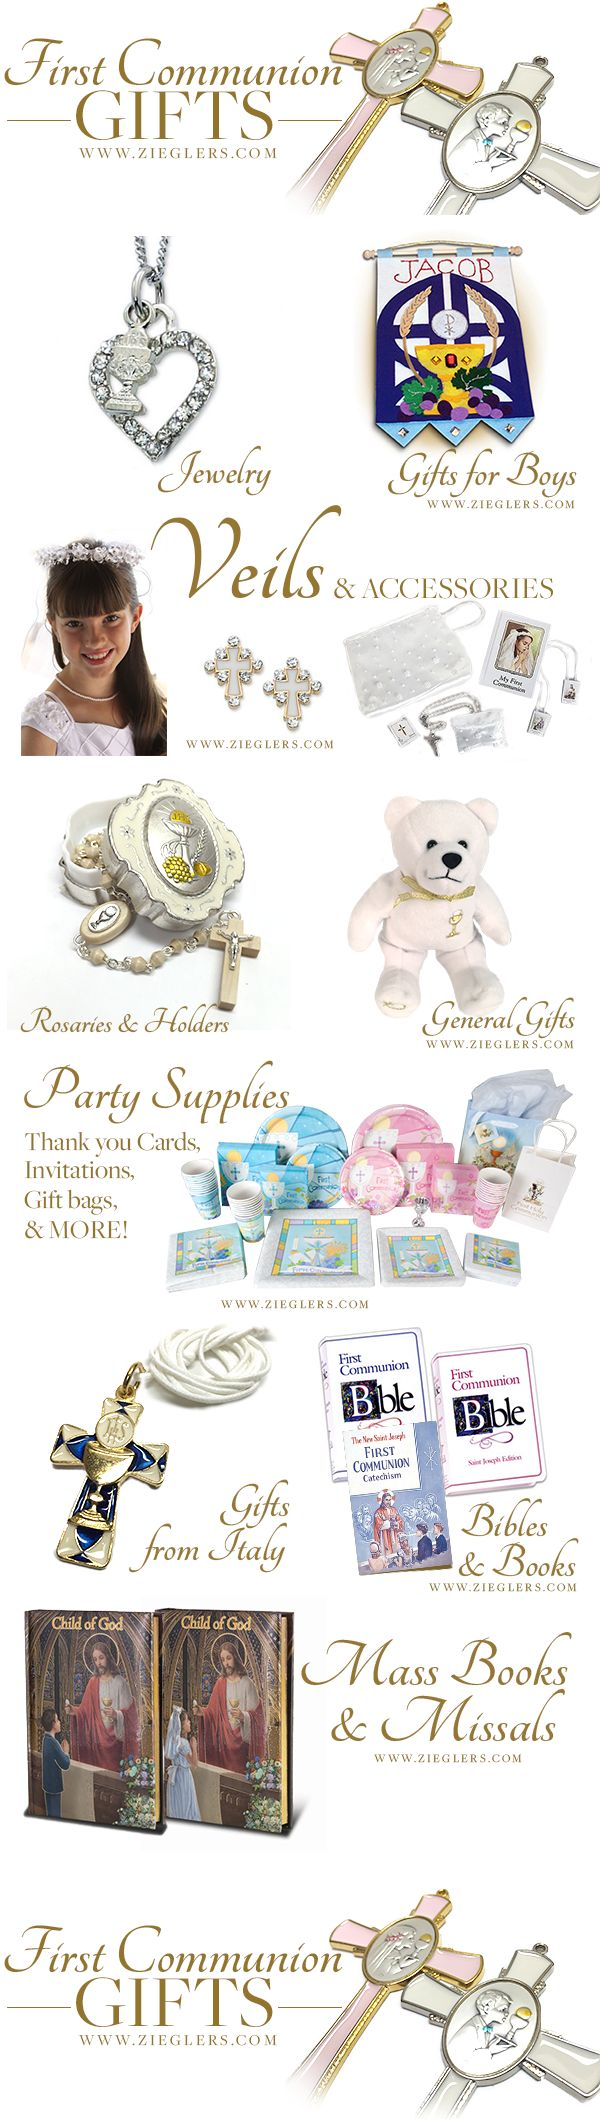 Plan on making their First Holy Communion something special? Browse a fine selection of First Communion Gifts and get some First Communion Ideas today! Everything from Veils, Jewelry, Party Supplies, Italian gifts, gifts for boys and so much more! See more at Zieglers.com #firstcommunion